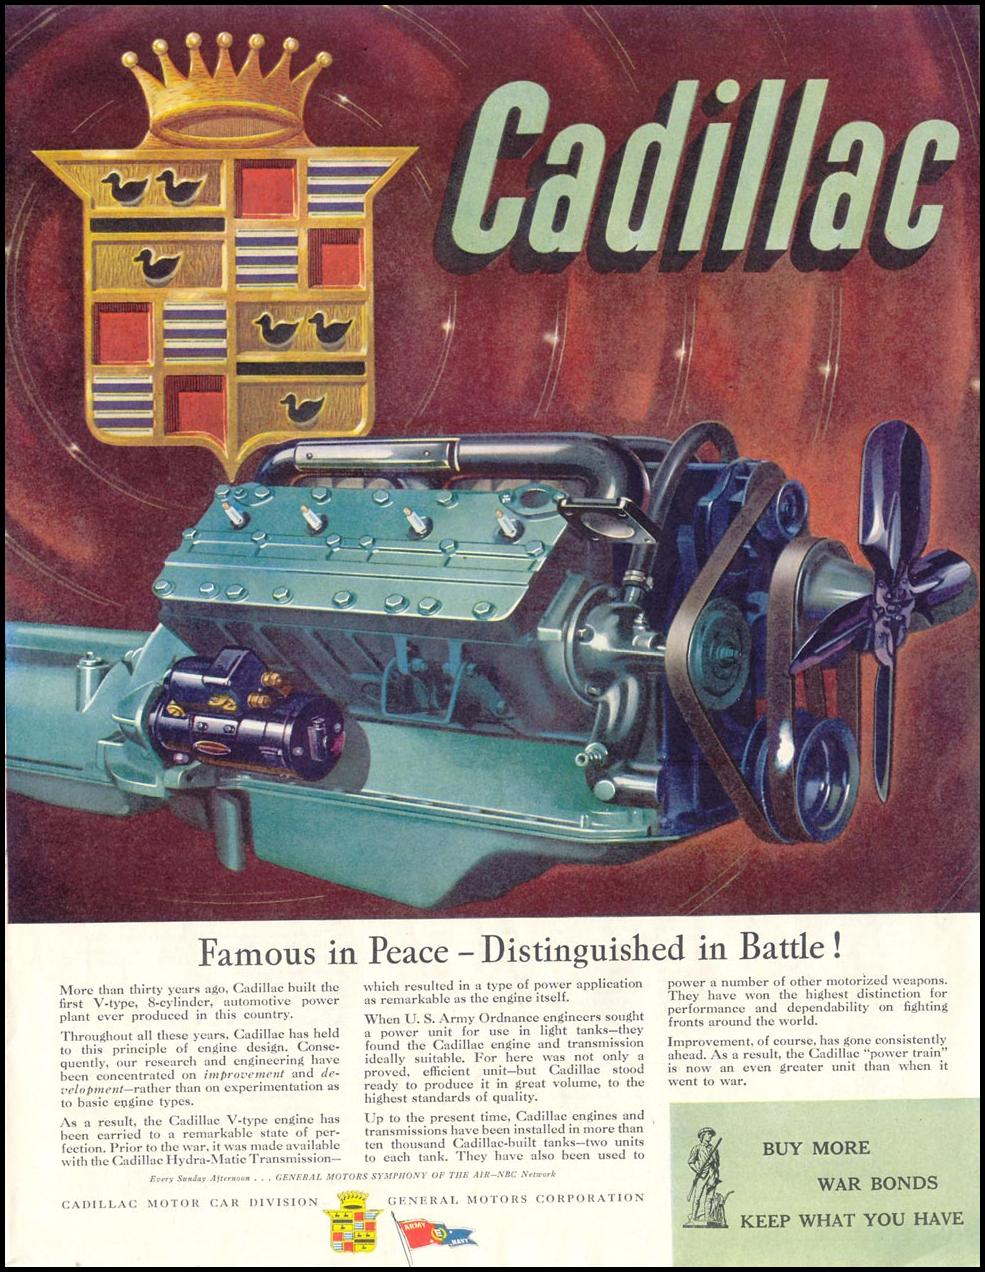 CADILLAC WAR PRODUCTION SATURDAY EVENING POST 05/19/1945 p. 31